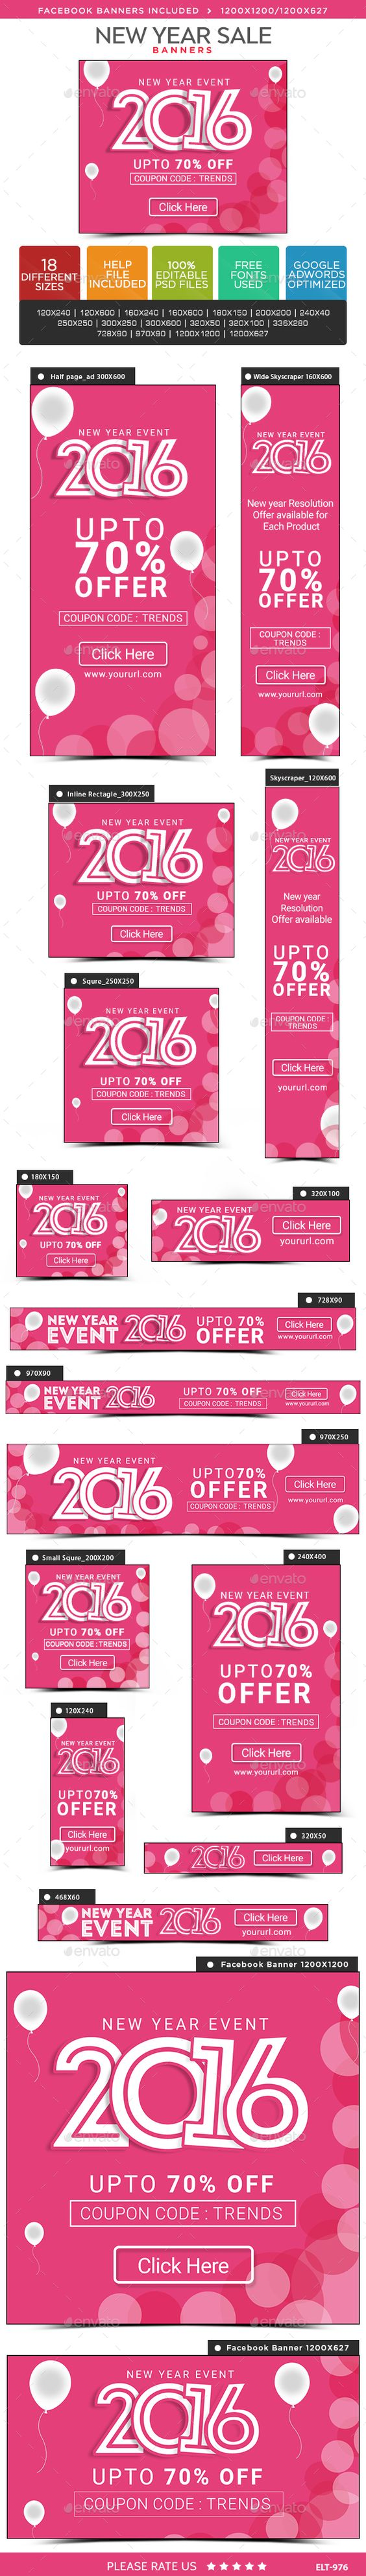 new year banners banner new year s and web banners new year web banners template psd design ad